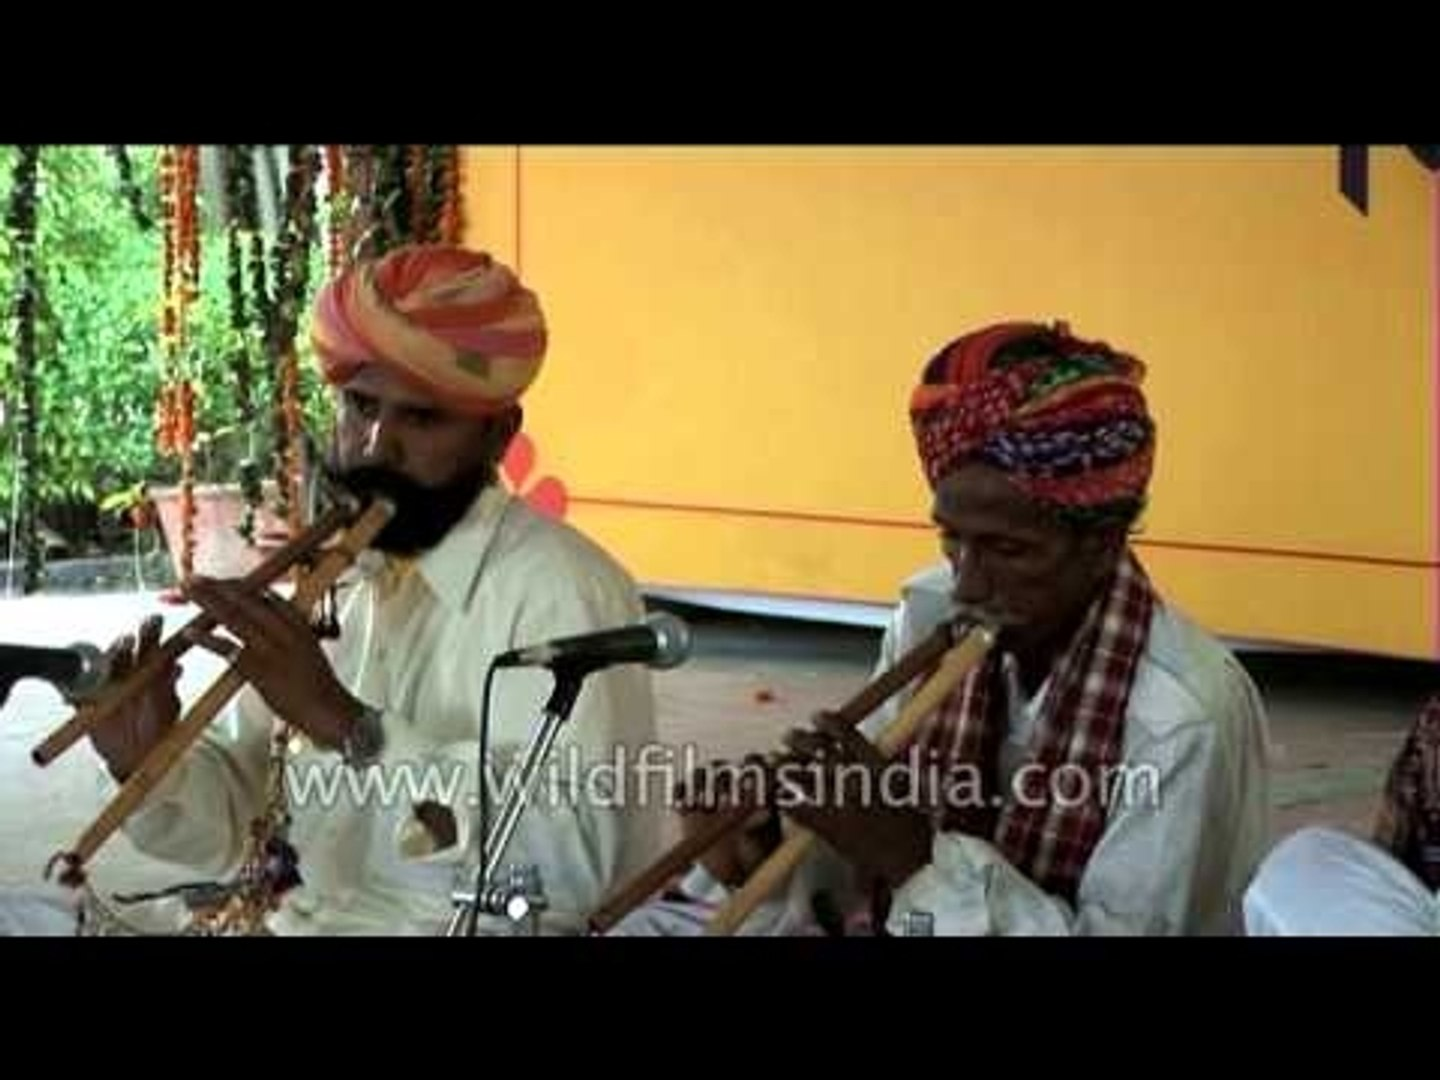 An amazing performance by Rajasthani Folk Musicians